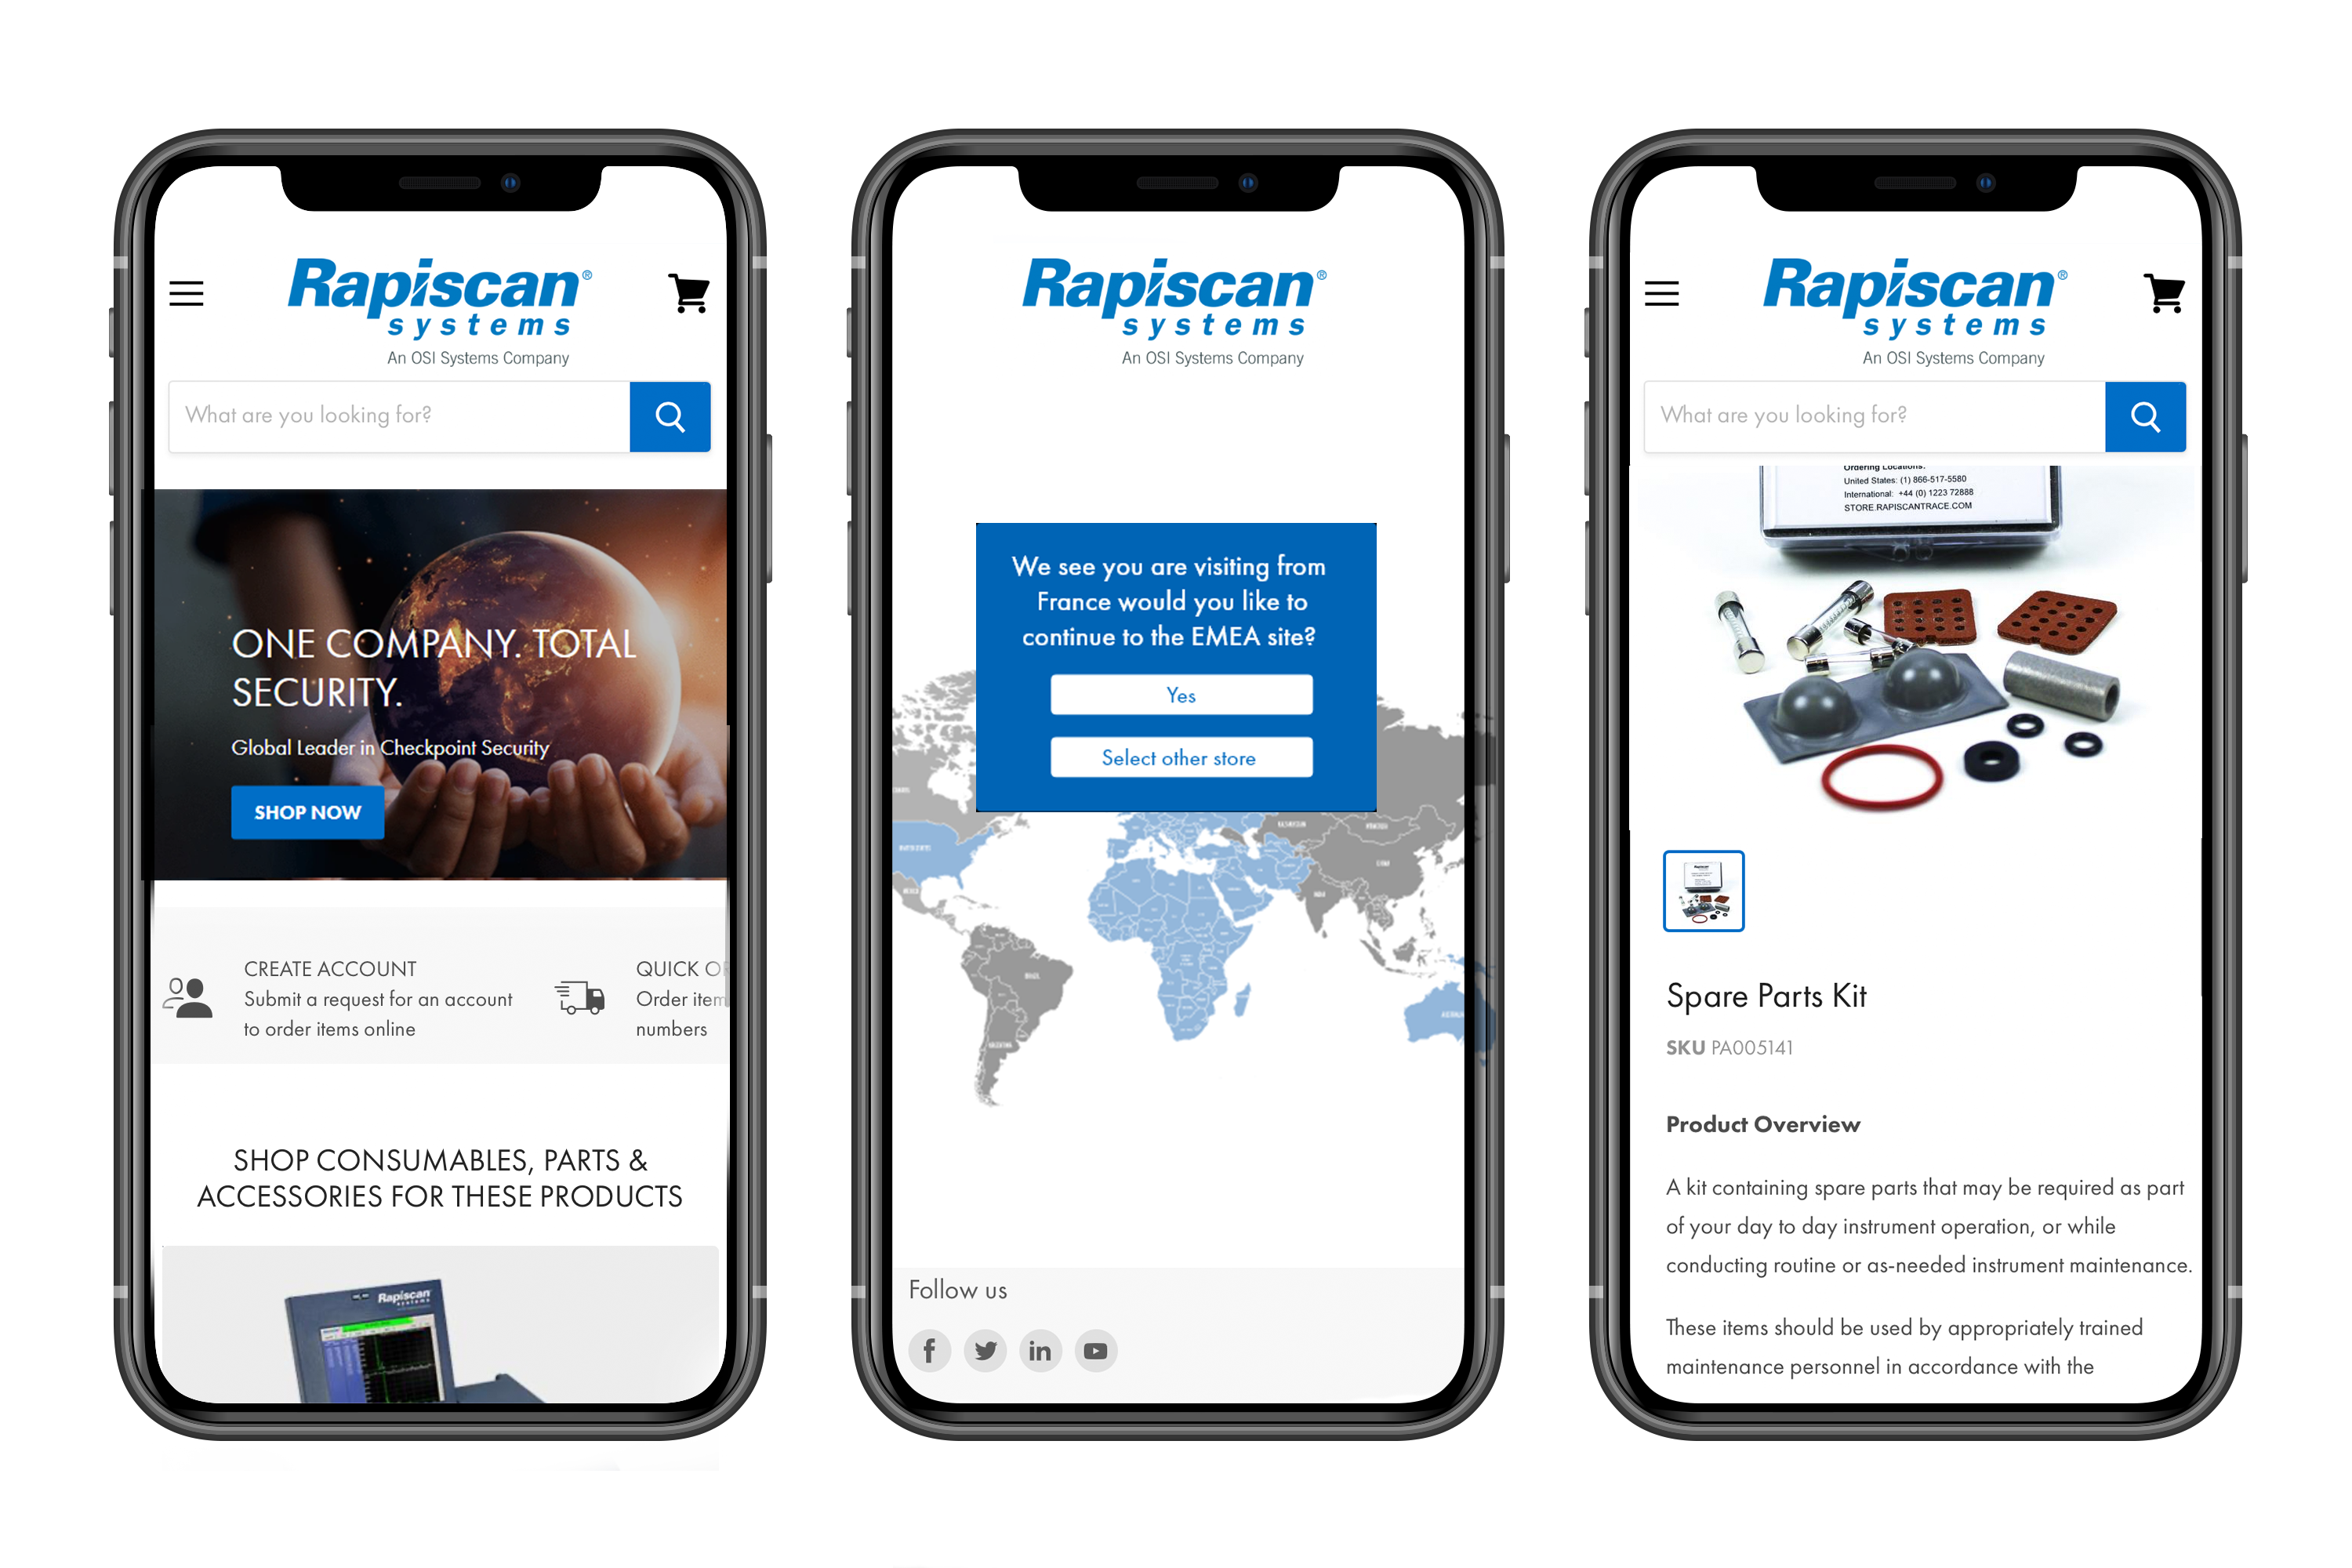 Rapiscan website on mobile devices